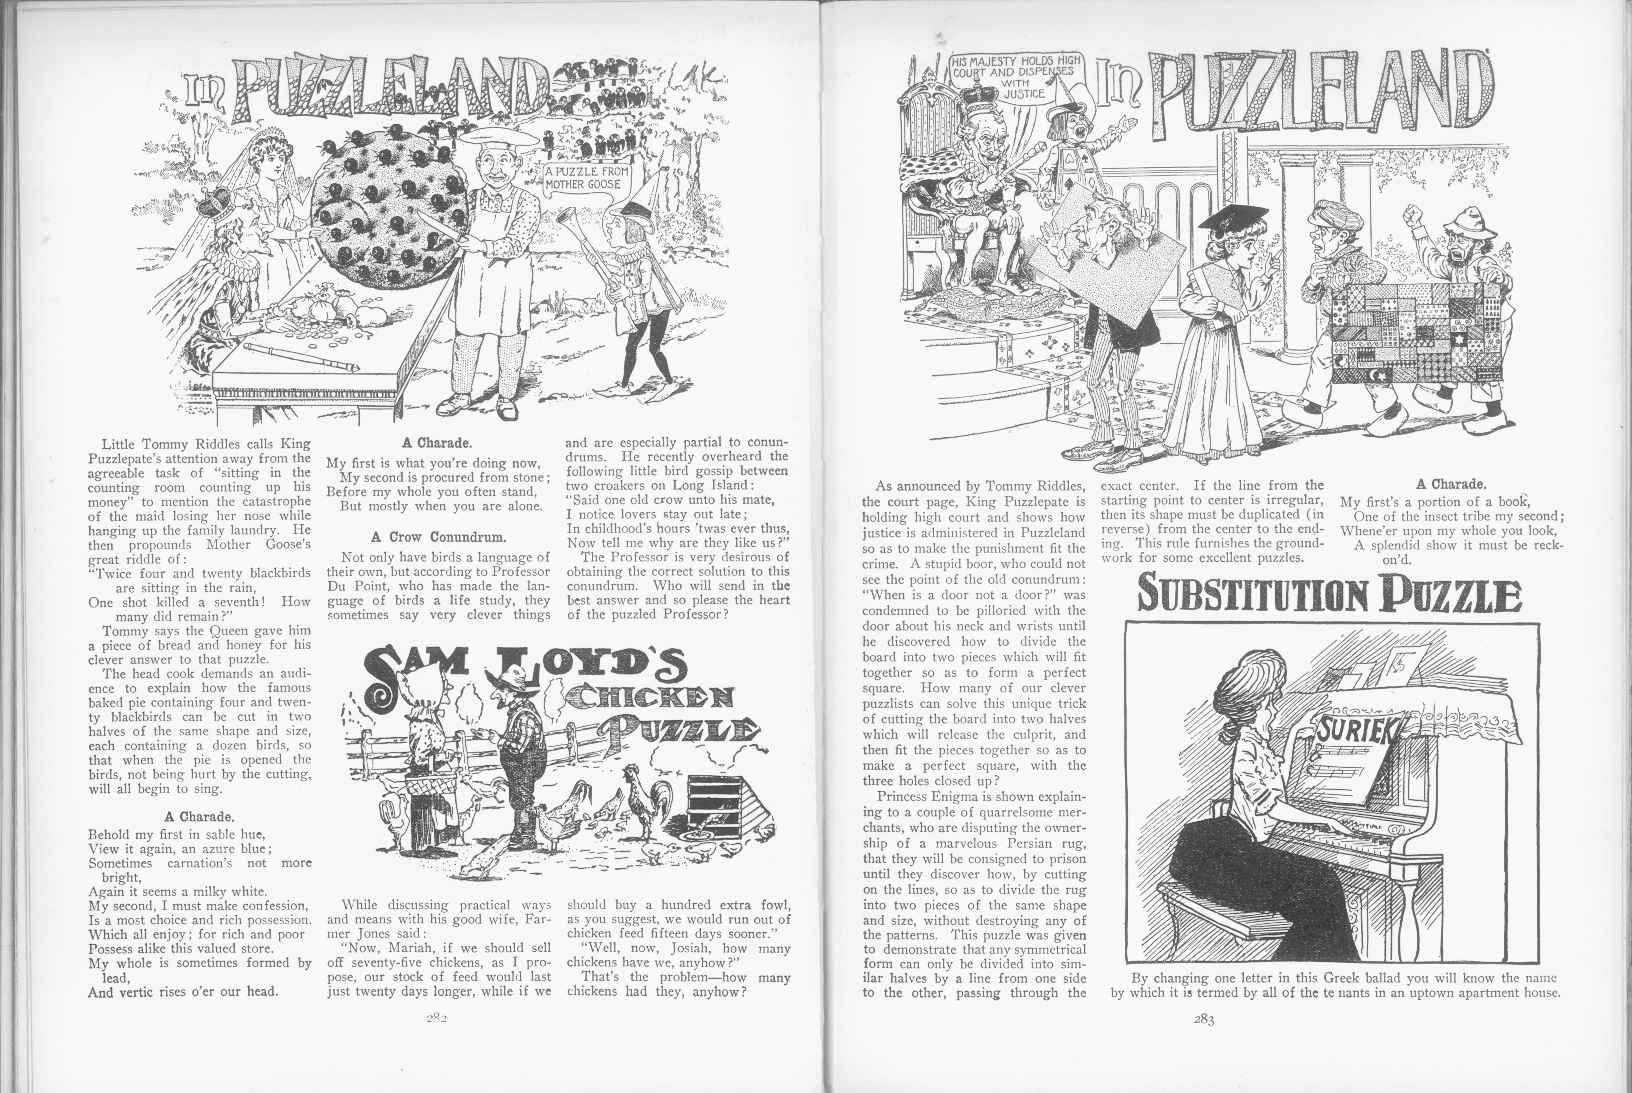 Sam Loyd - Cyclopedia of Puzzles - page 282-283